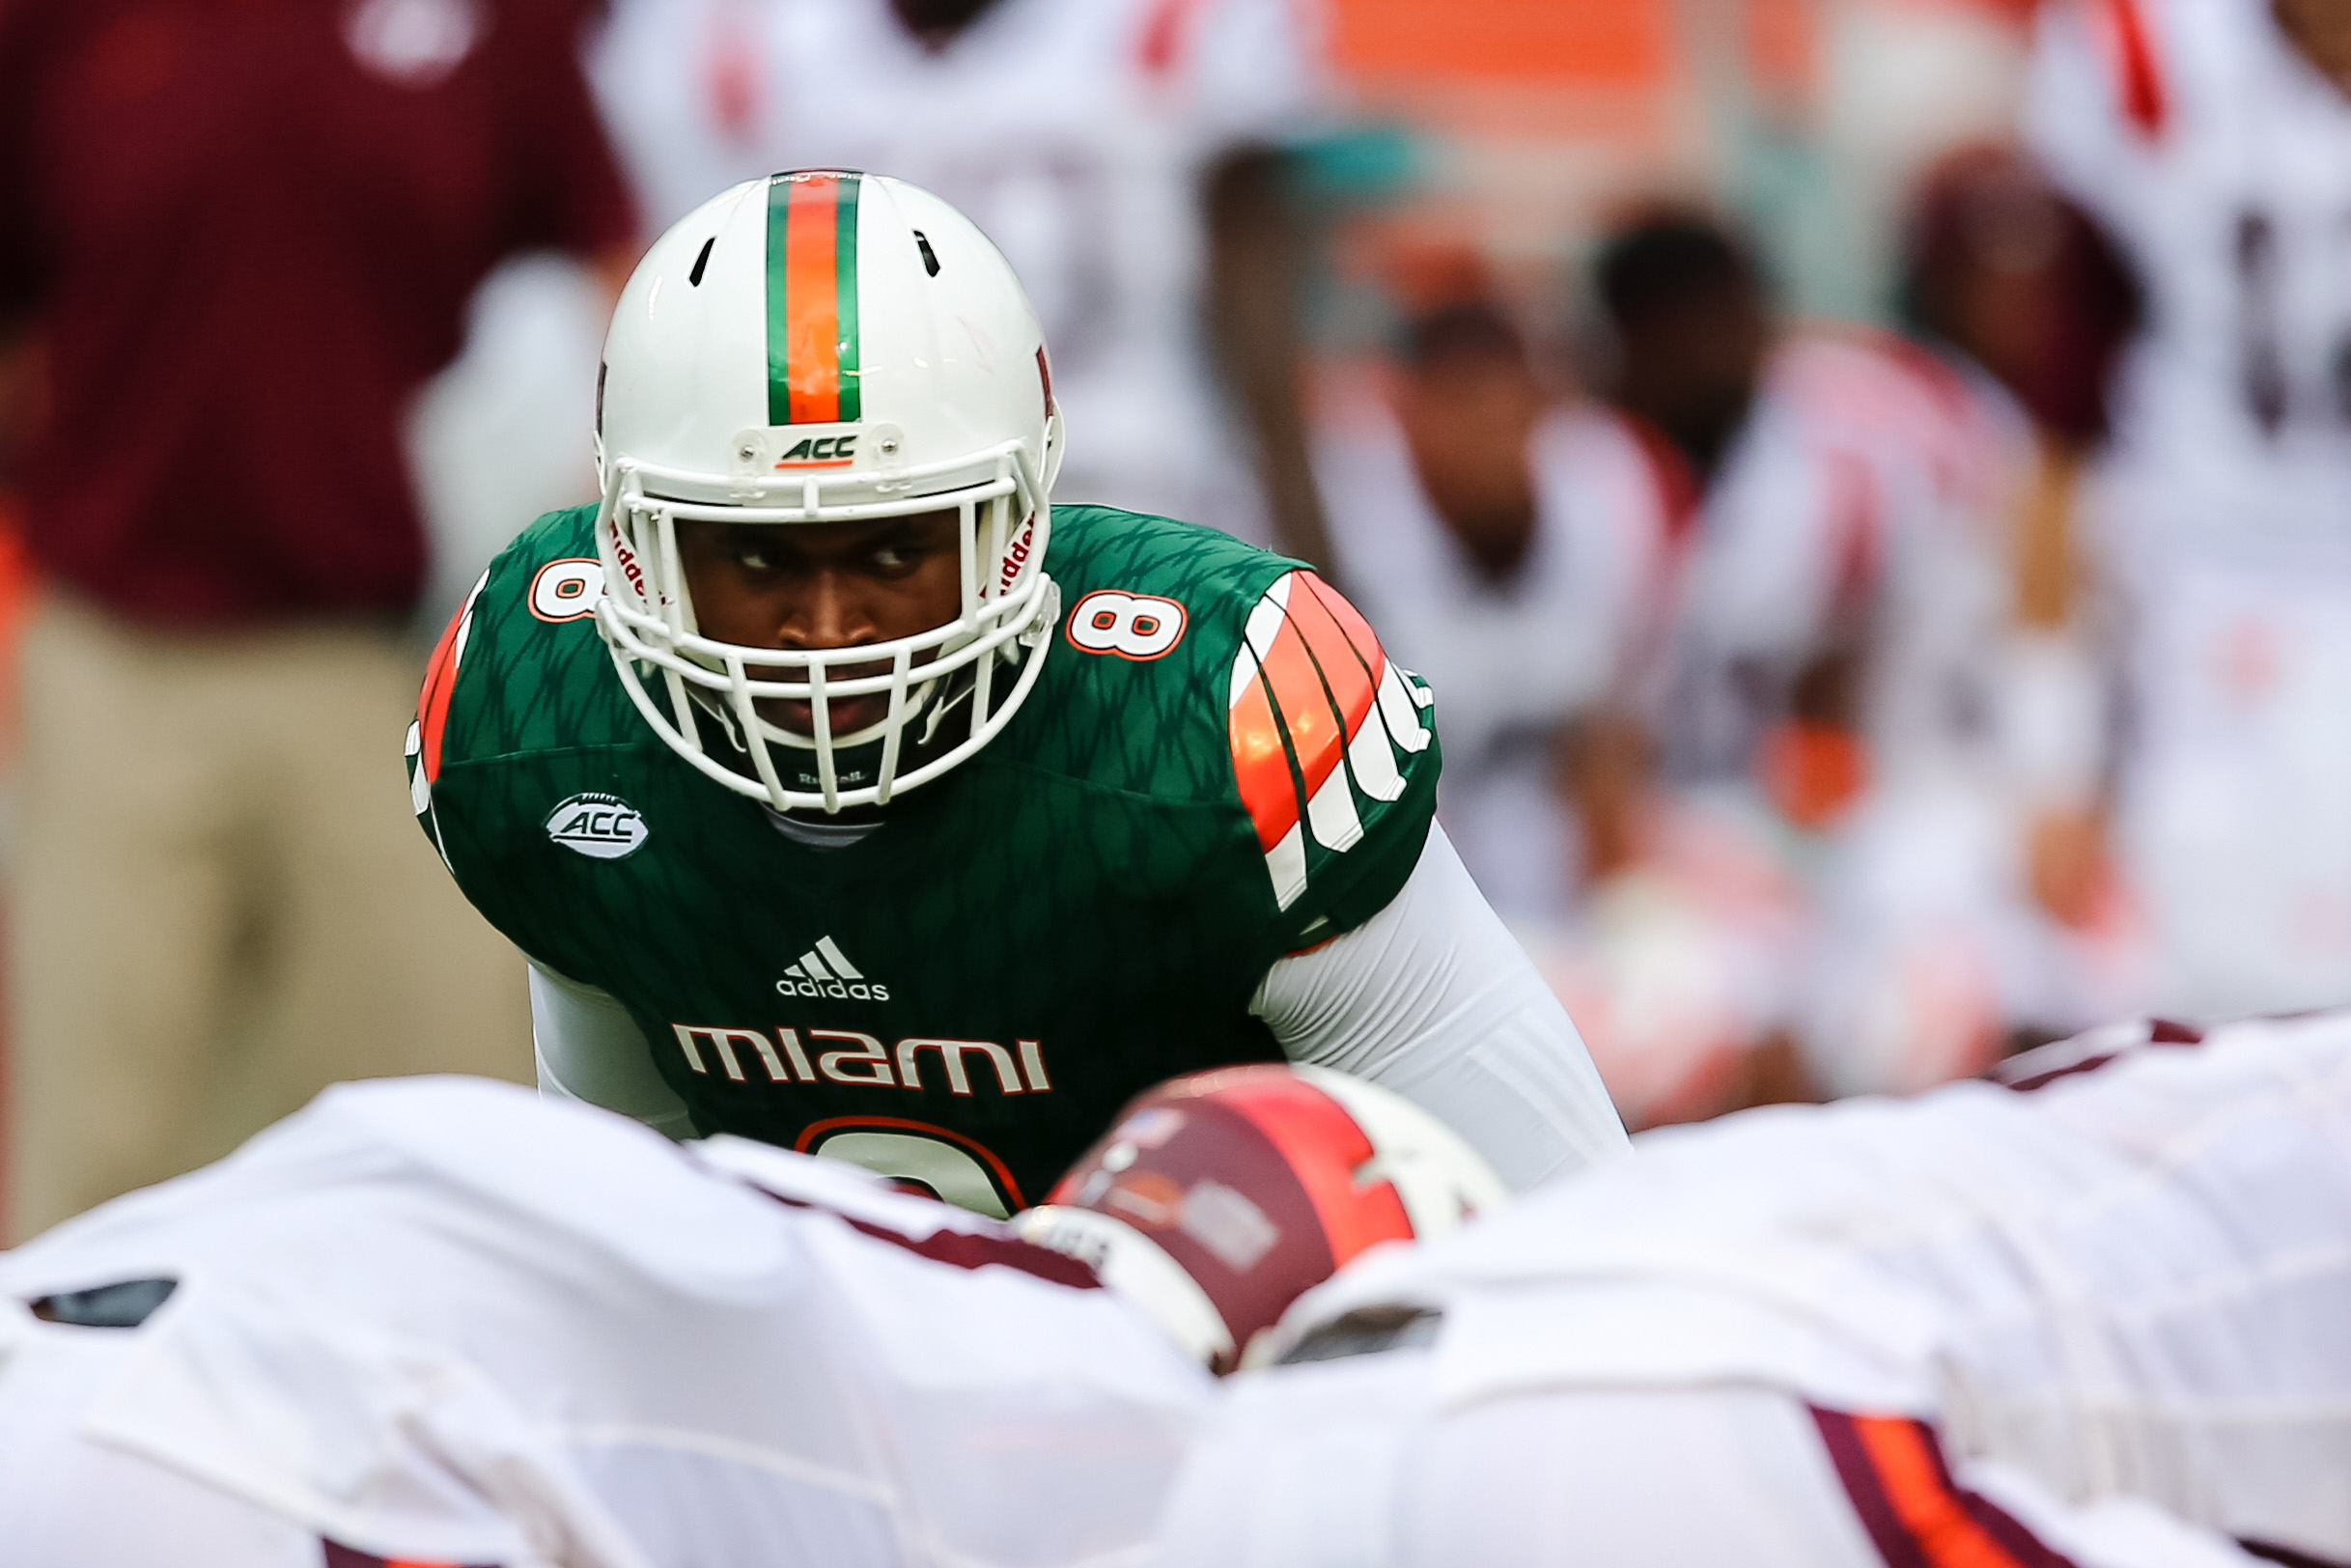 Oct 17, 2015; Miami Gardens, FL, USA; Miami Hurricanes defensive lineman Al-Quadin Muhammad (8) lines up at the line of scrimmage against Virginia Tech Hokies during the first half at Sun Life Stadium. Miami won 30-20. Mandatory Credit: Steve Mitchell-USA TODAY Sports